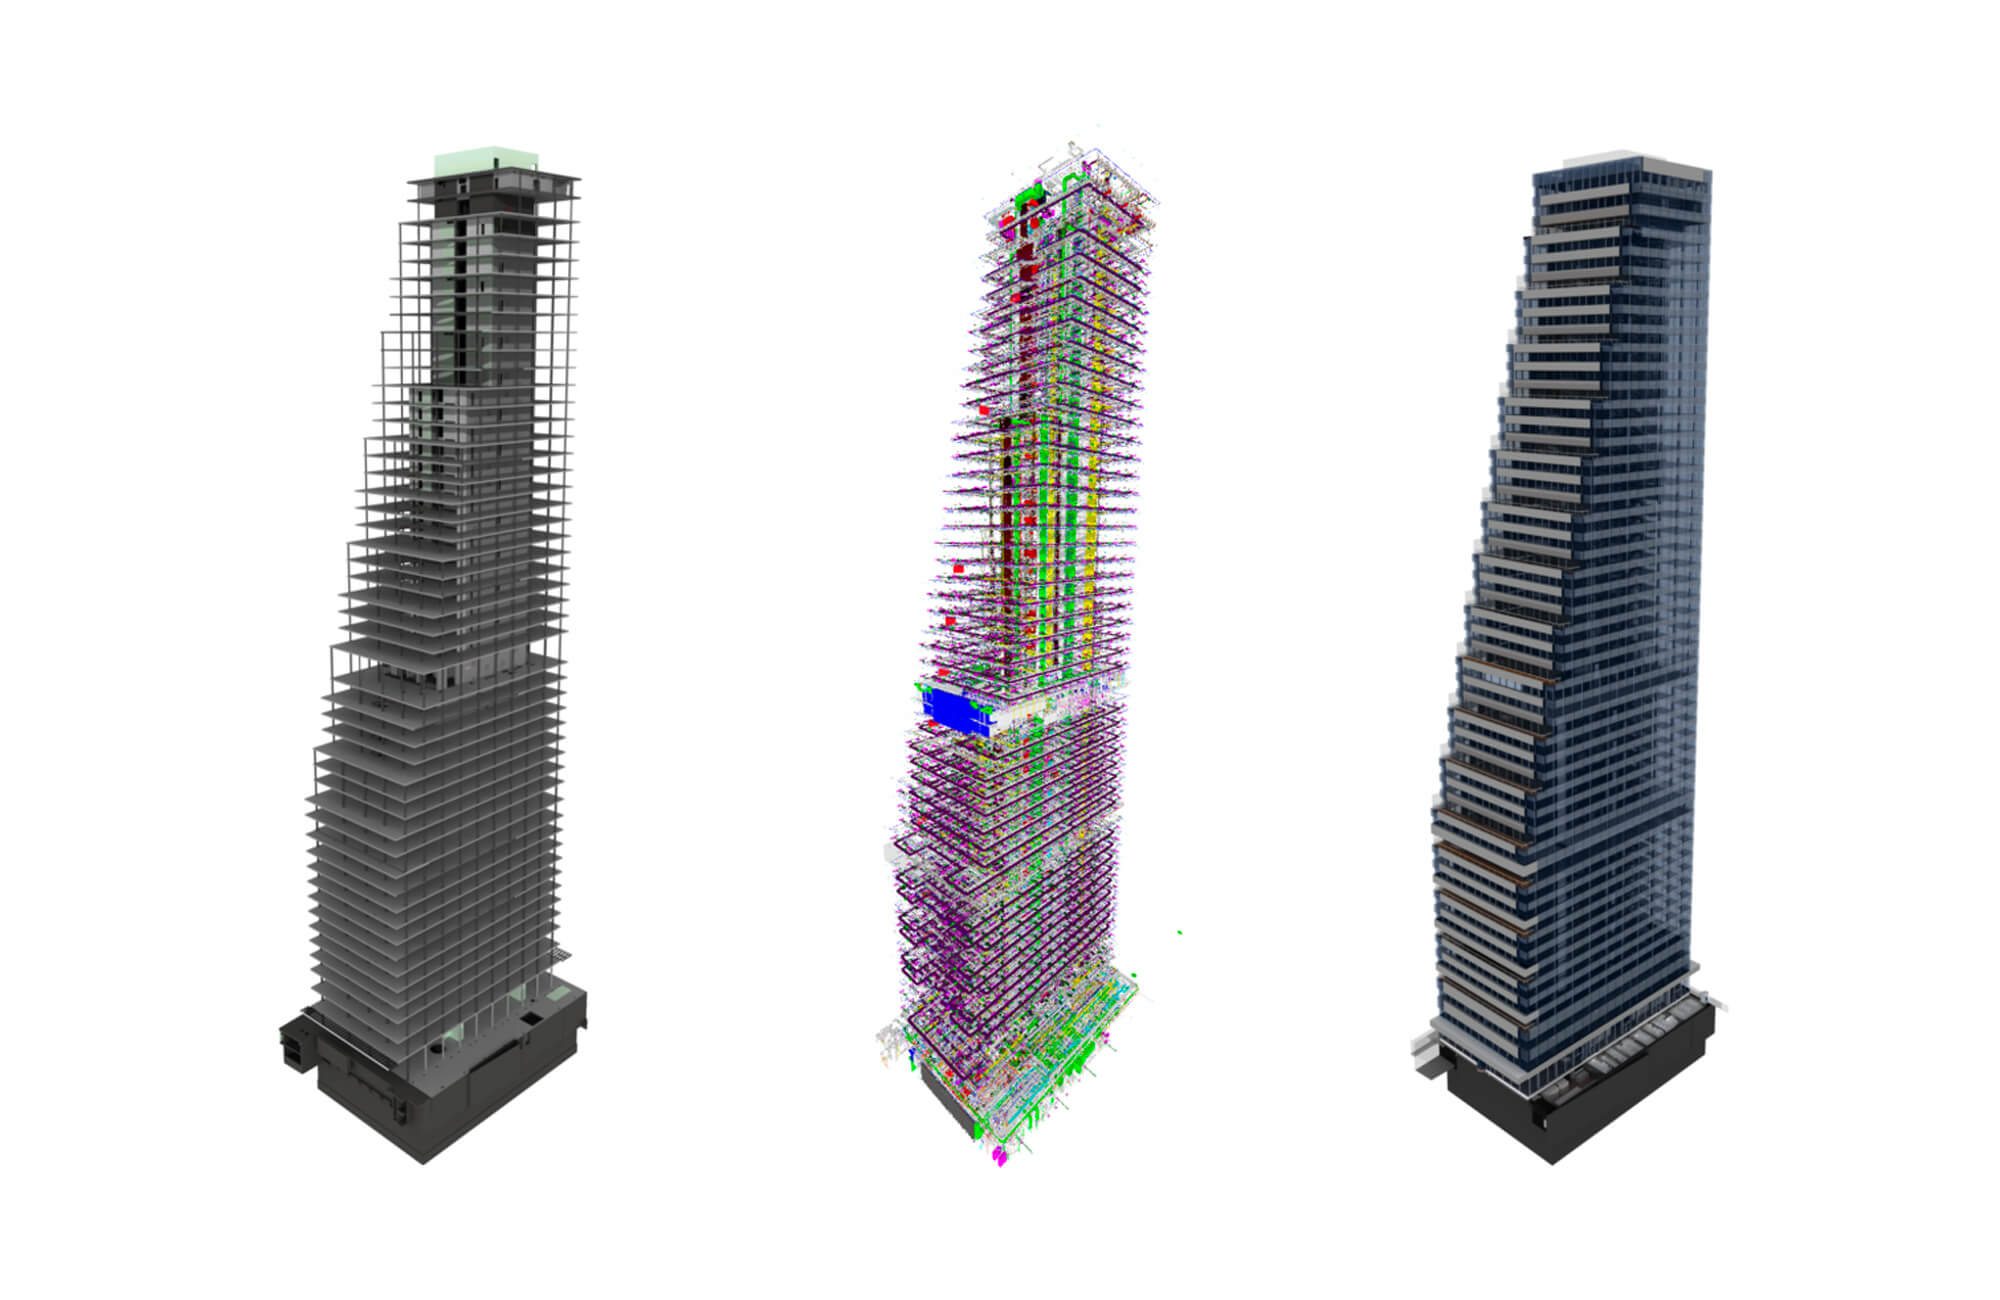 3D views of the three submodels: the structural model (left), the engineering model (center), and the architectural model (right).